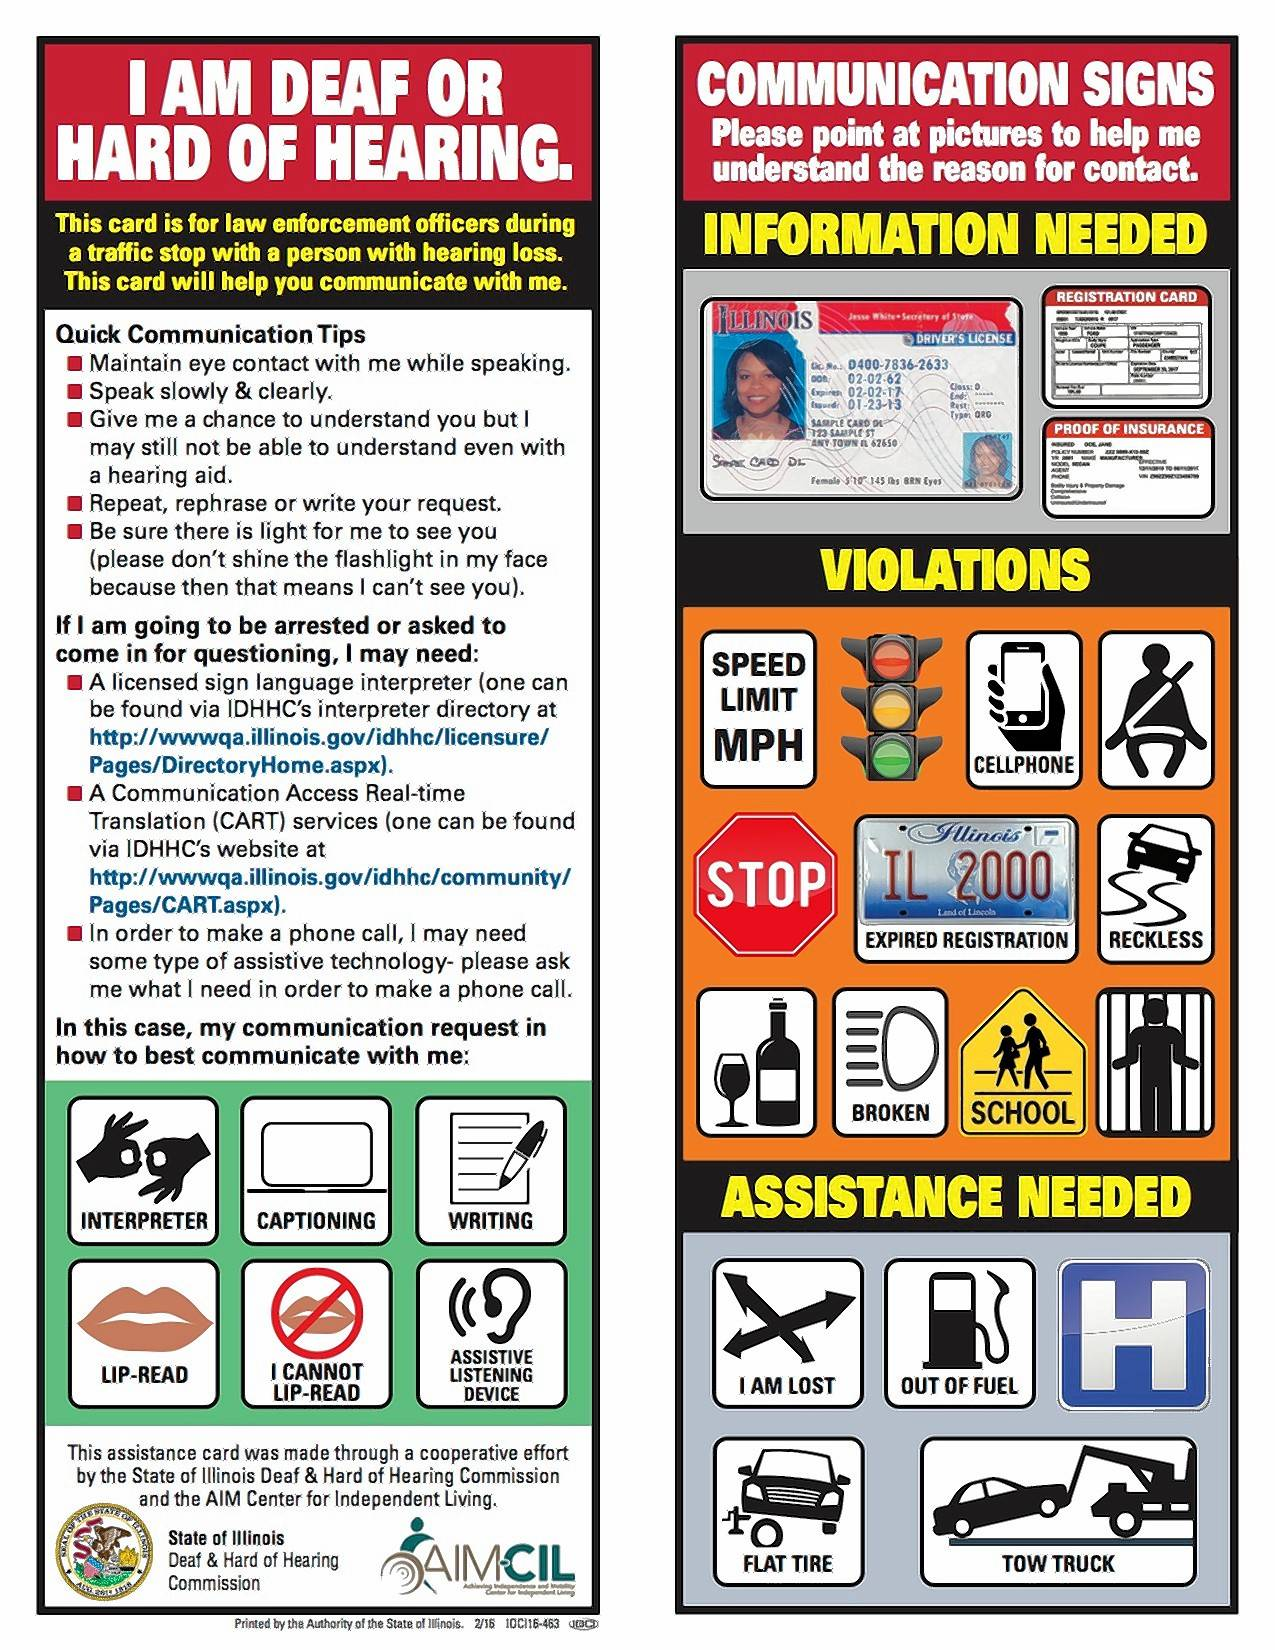 These visor cards developed by the Achieving Independence and Mobility Center for Independent Living are part of a Buffalo Grove Police effort to improve communication with hearing-impaired drivers.